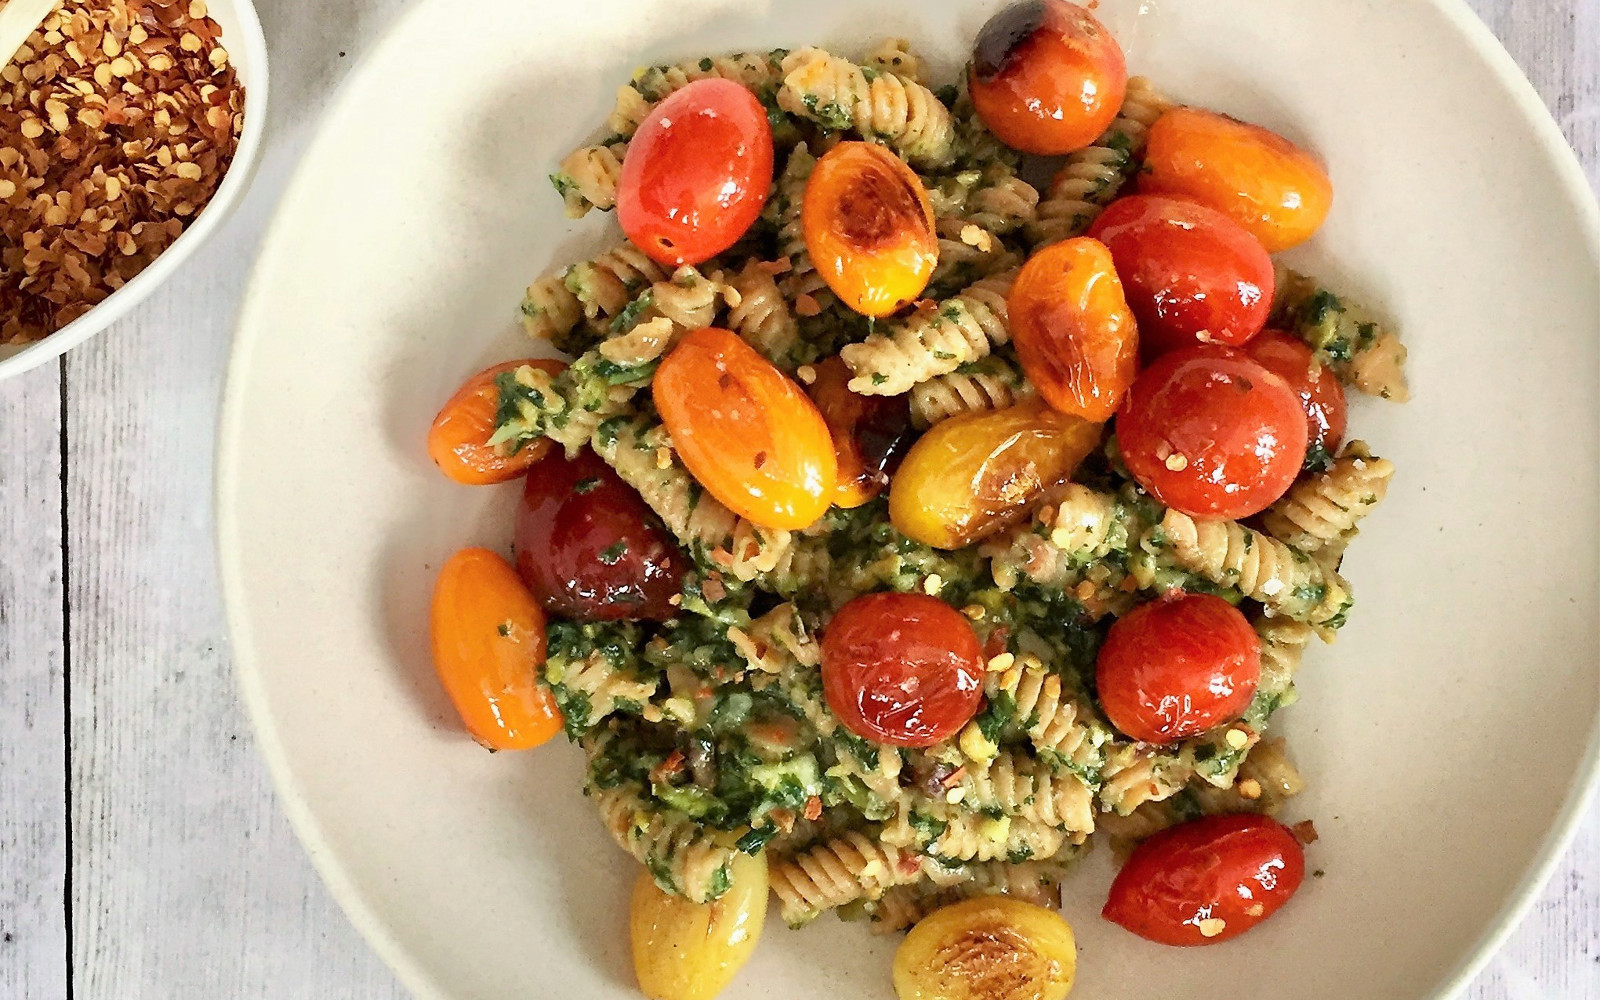 Gluten-Free Vegan Red Lentil Pasta with Basil-Pistachio Pesto with roasted colorful tomatoes